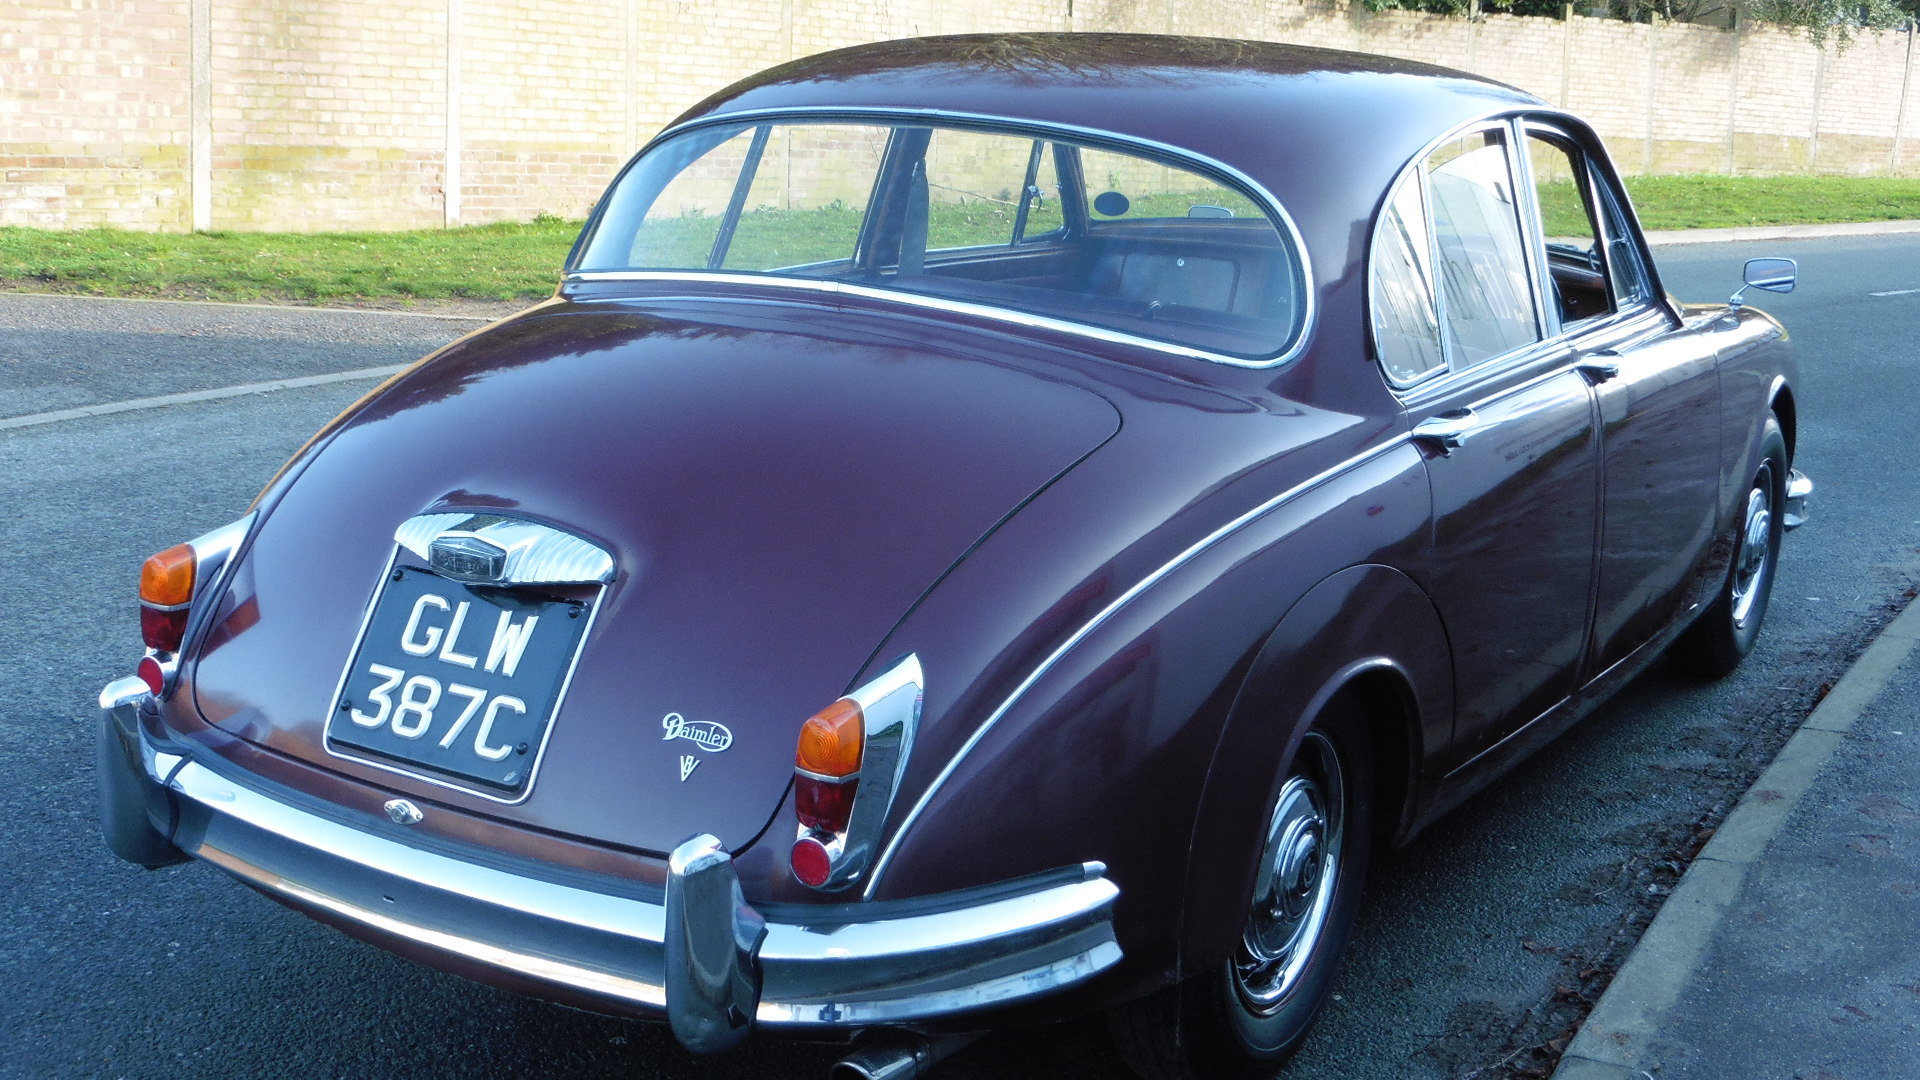 1965 Daimler V8 250 Just 2 Owners & 45,000 Miles Time Warp Cond. SOLD (picture 2 of 6)